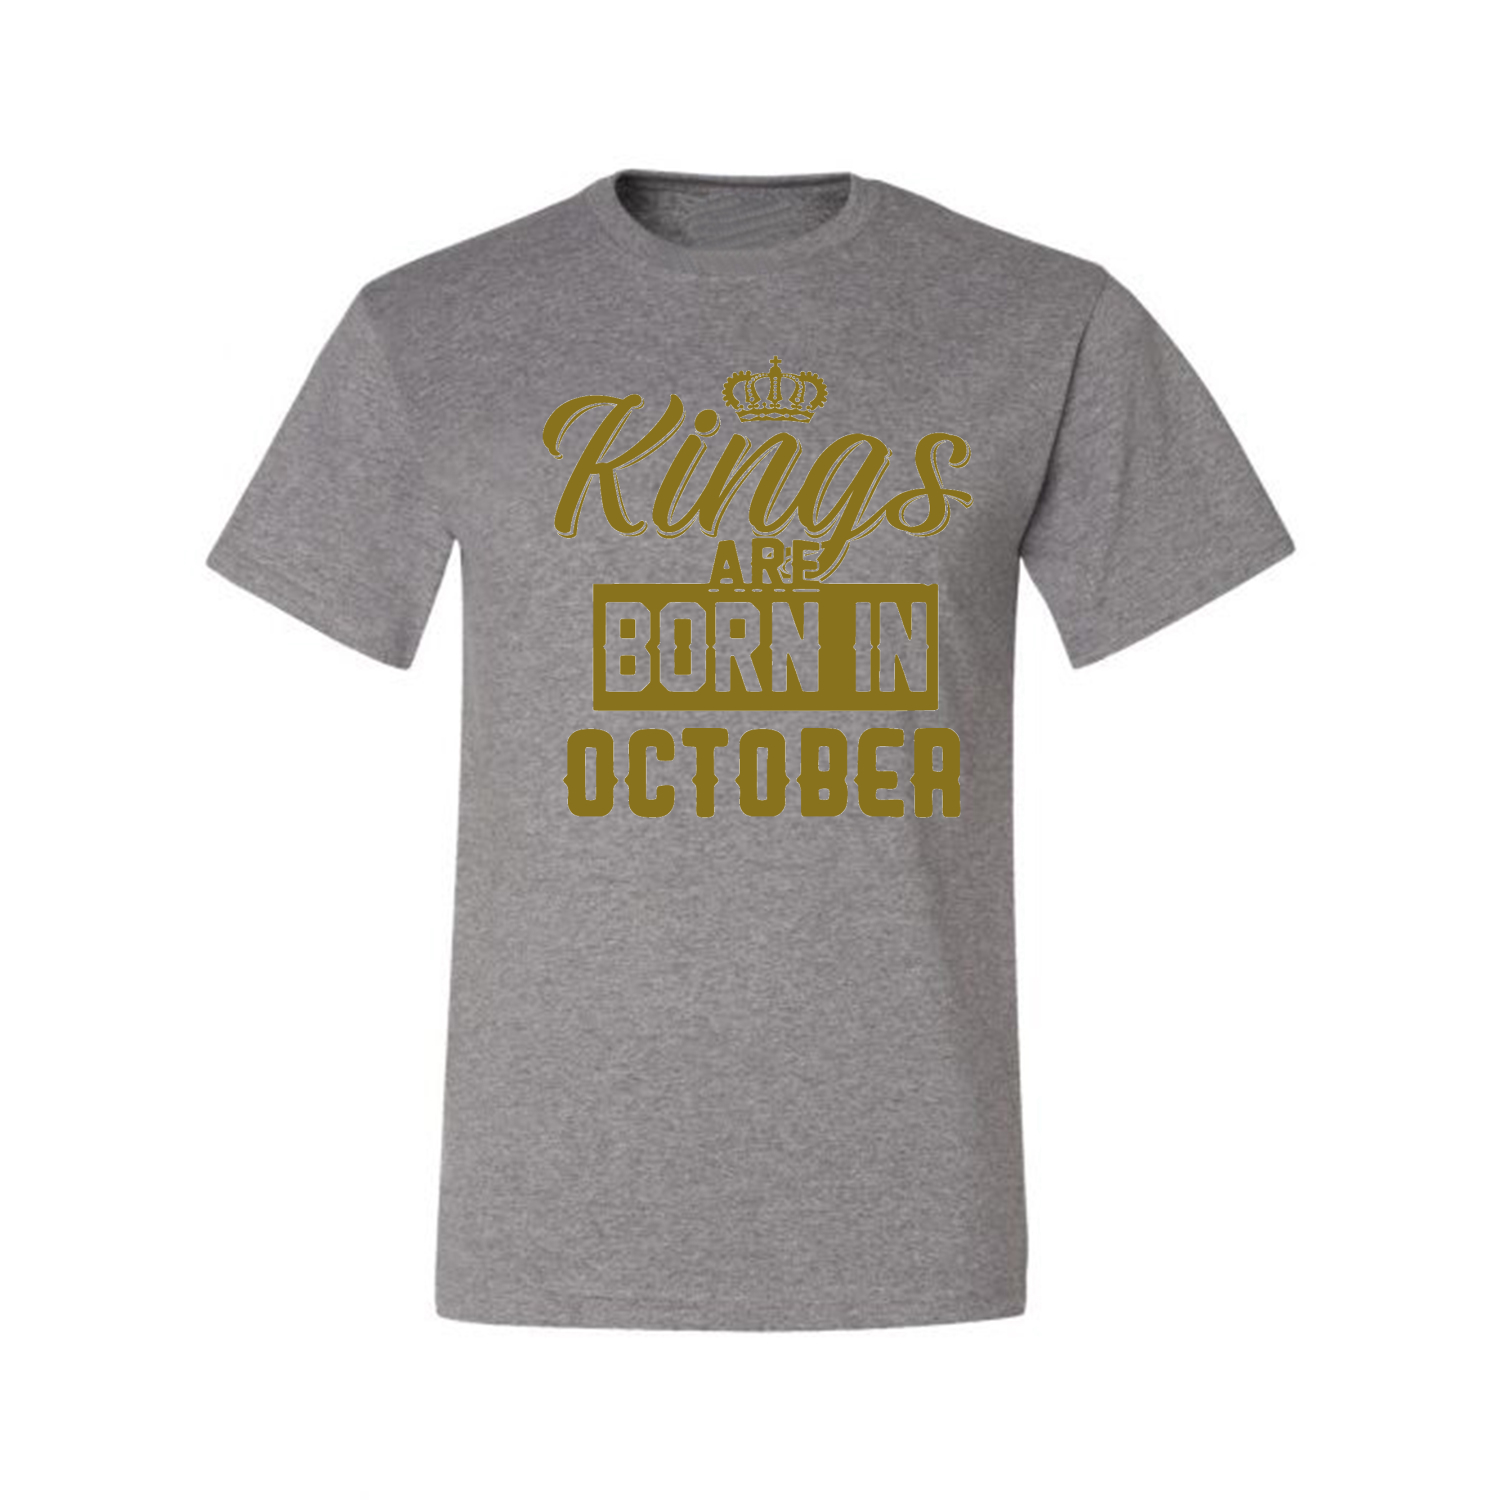 Kings-Are-Born-In-October-Mens-Birthday-T-Shirt-Graphic-Anniversary-Gift-Tee thumbnail 12